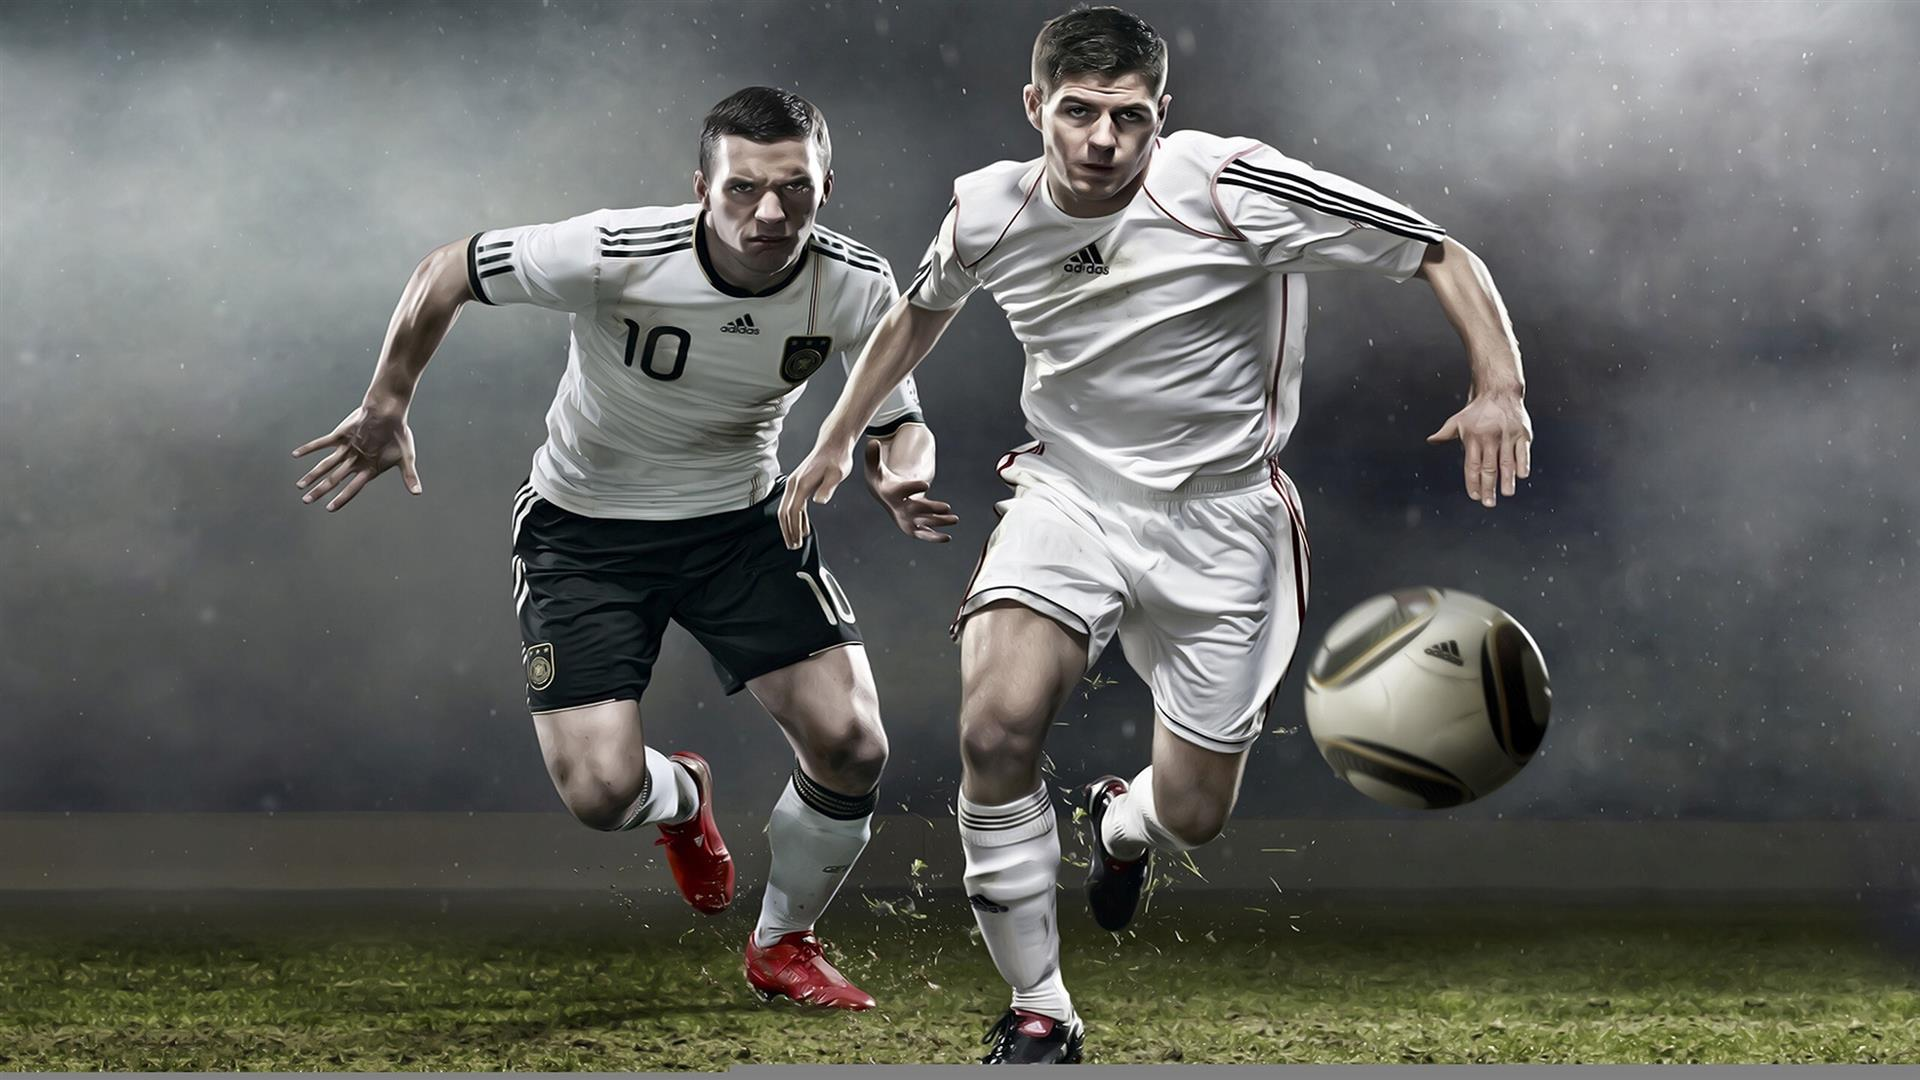 1920x1080 3D Football Players Play Game High Quality Photos